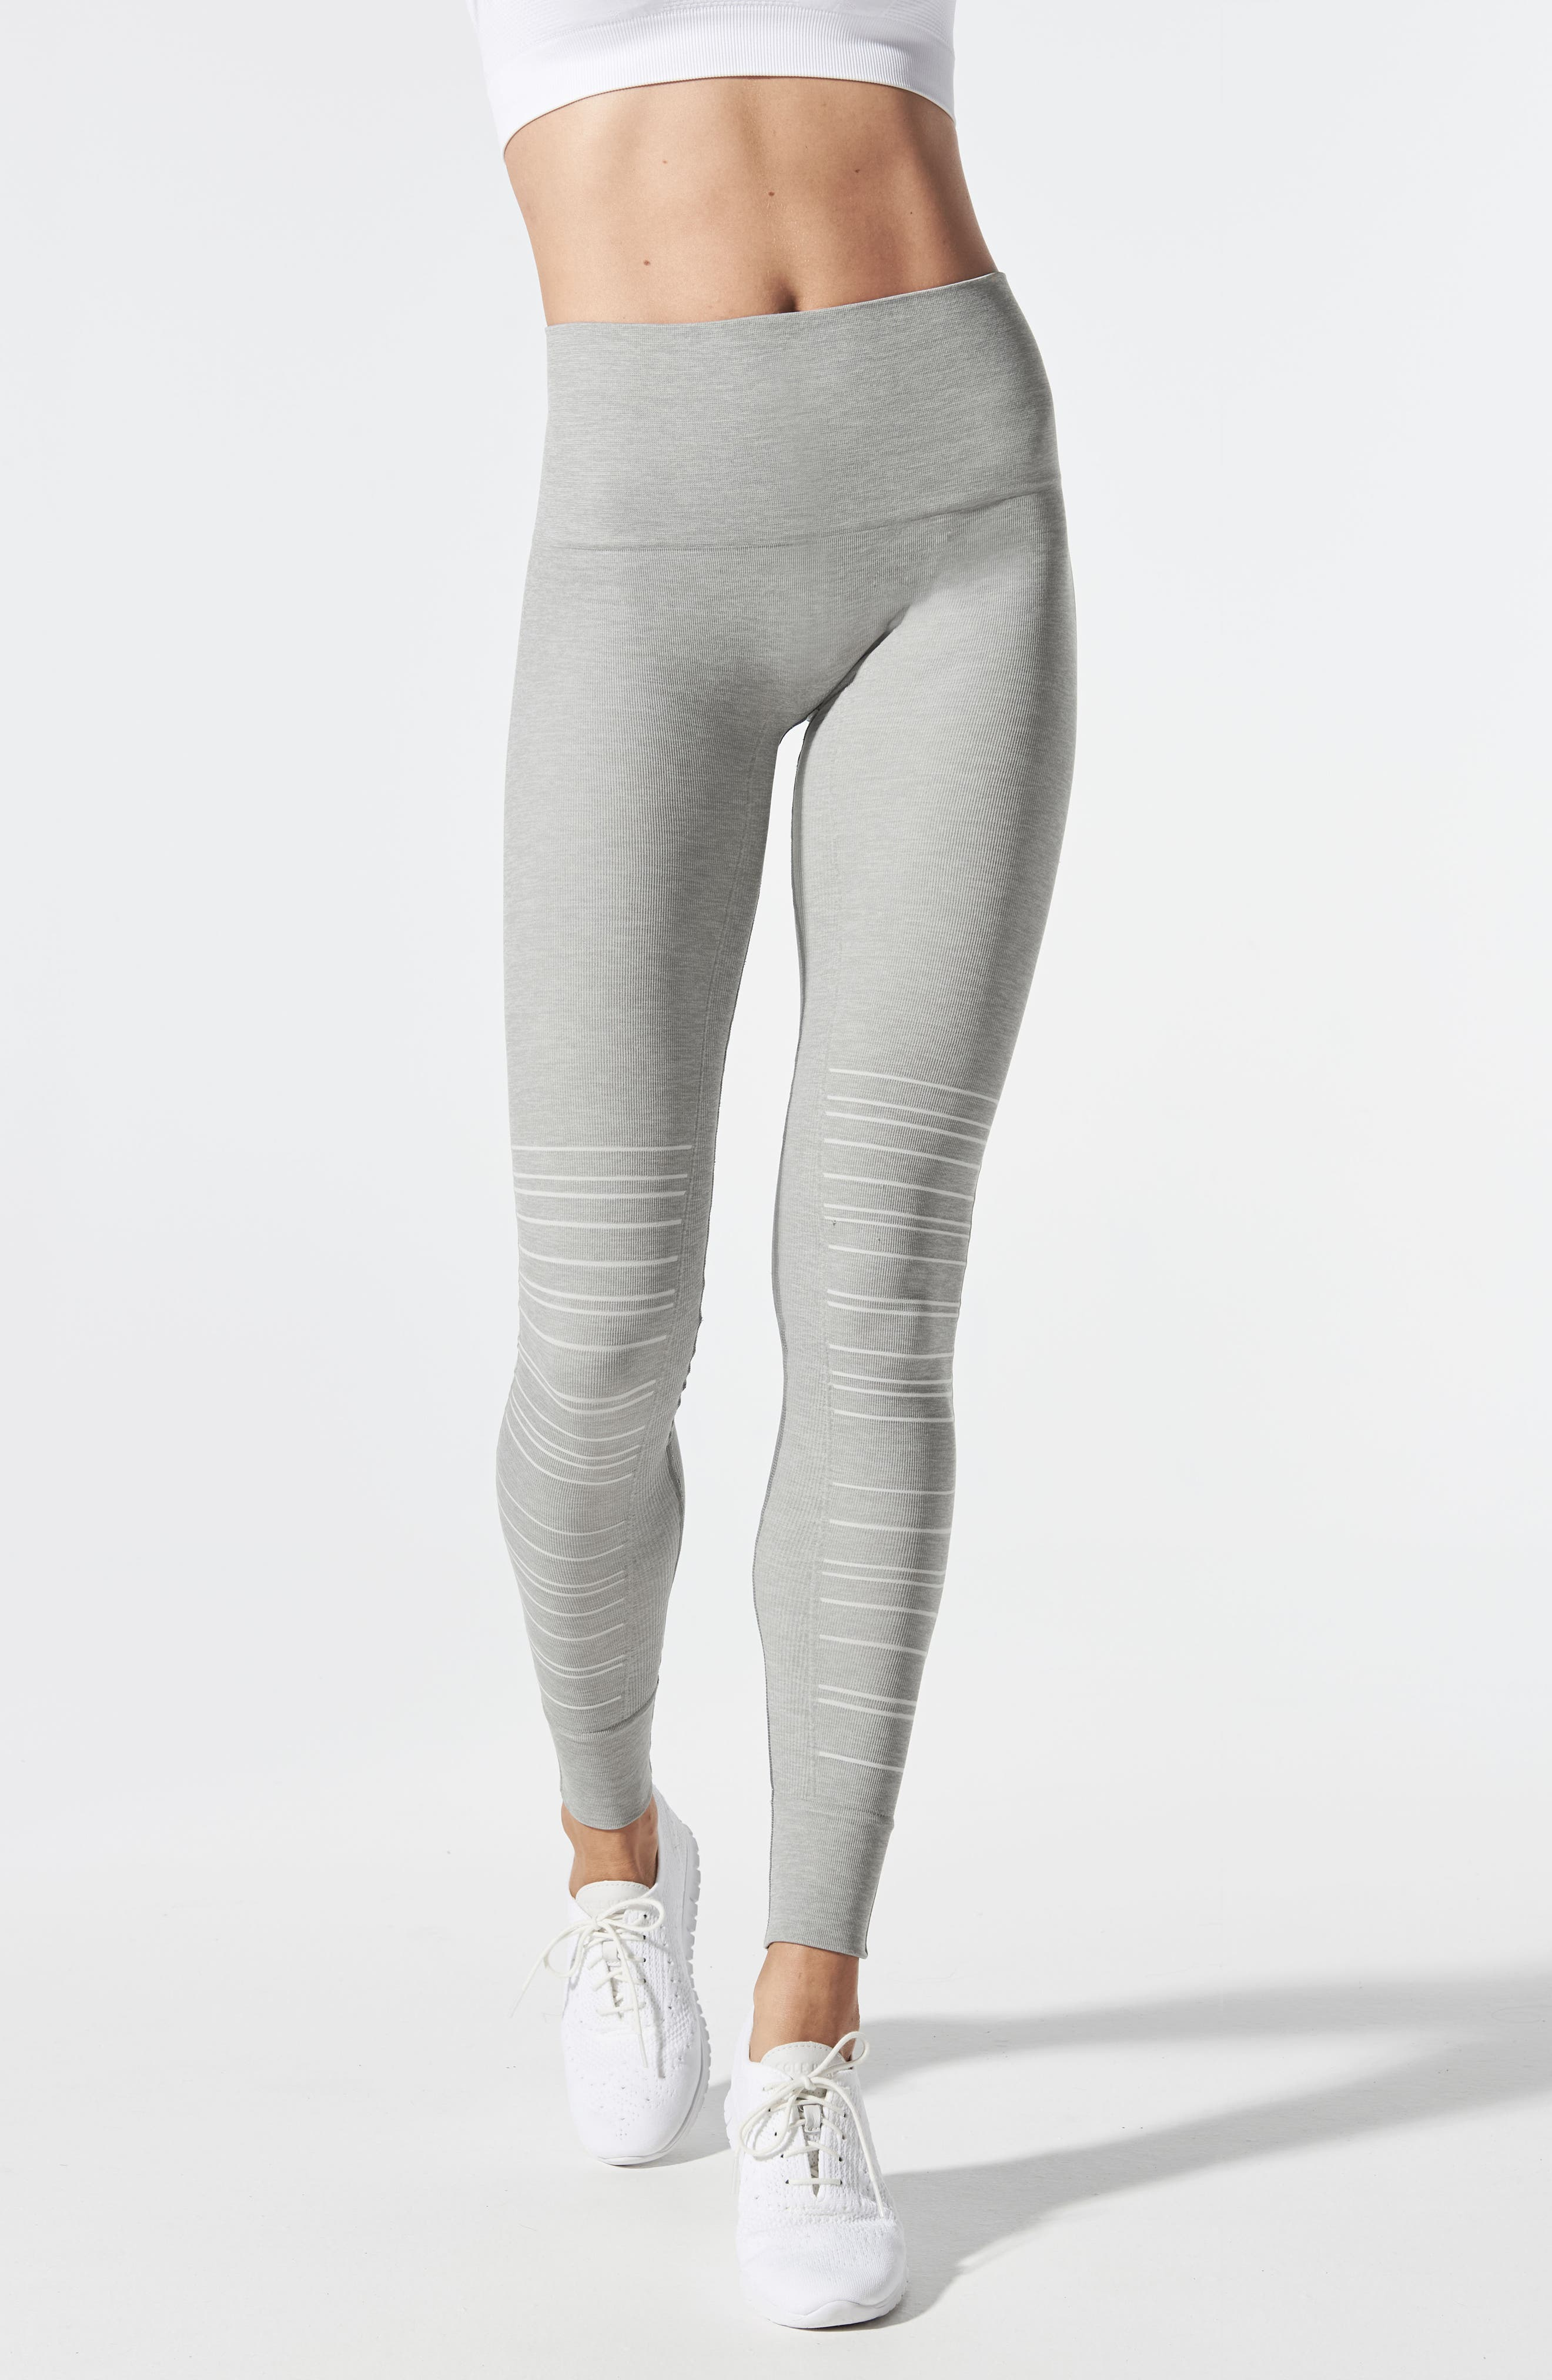 SportSupport<sup>®</sup> Hipster Cuffed Support Maternity/Postpartum Leggings,                             Alternate thumbnail 4, color,                             DOVE GREY